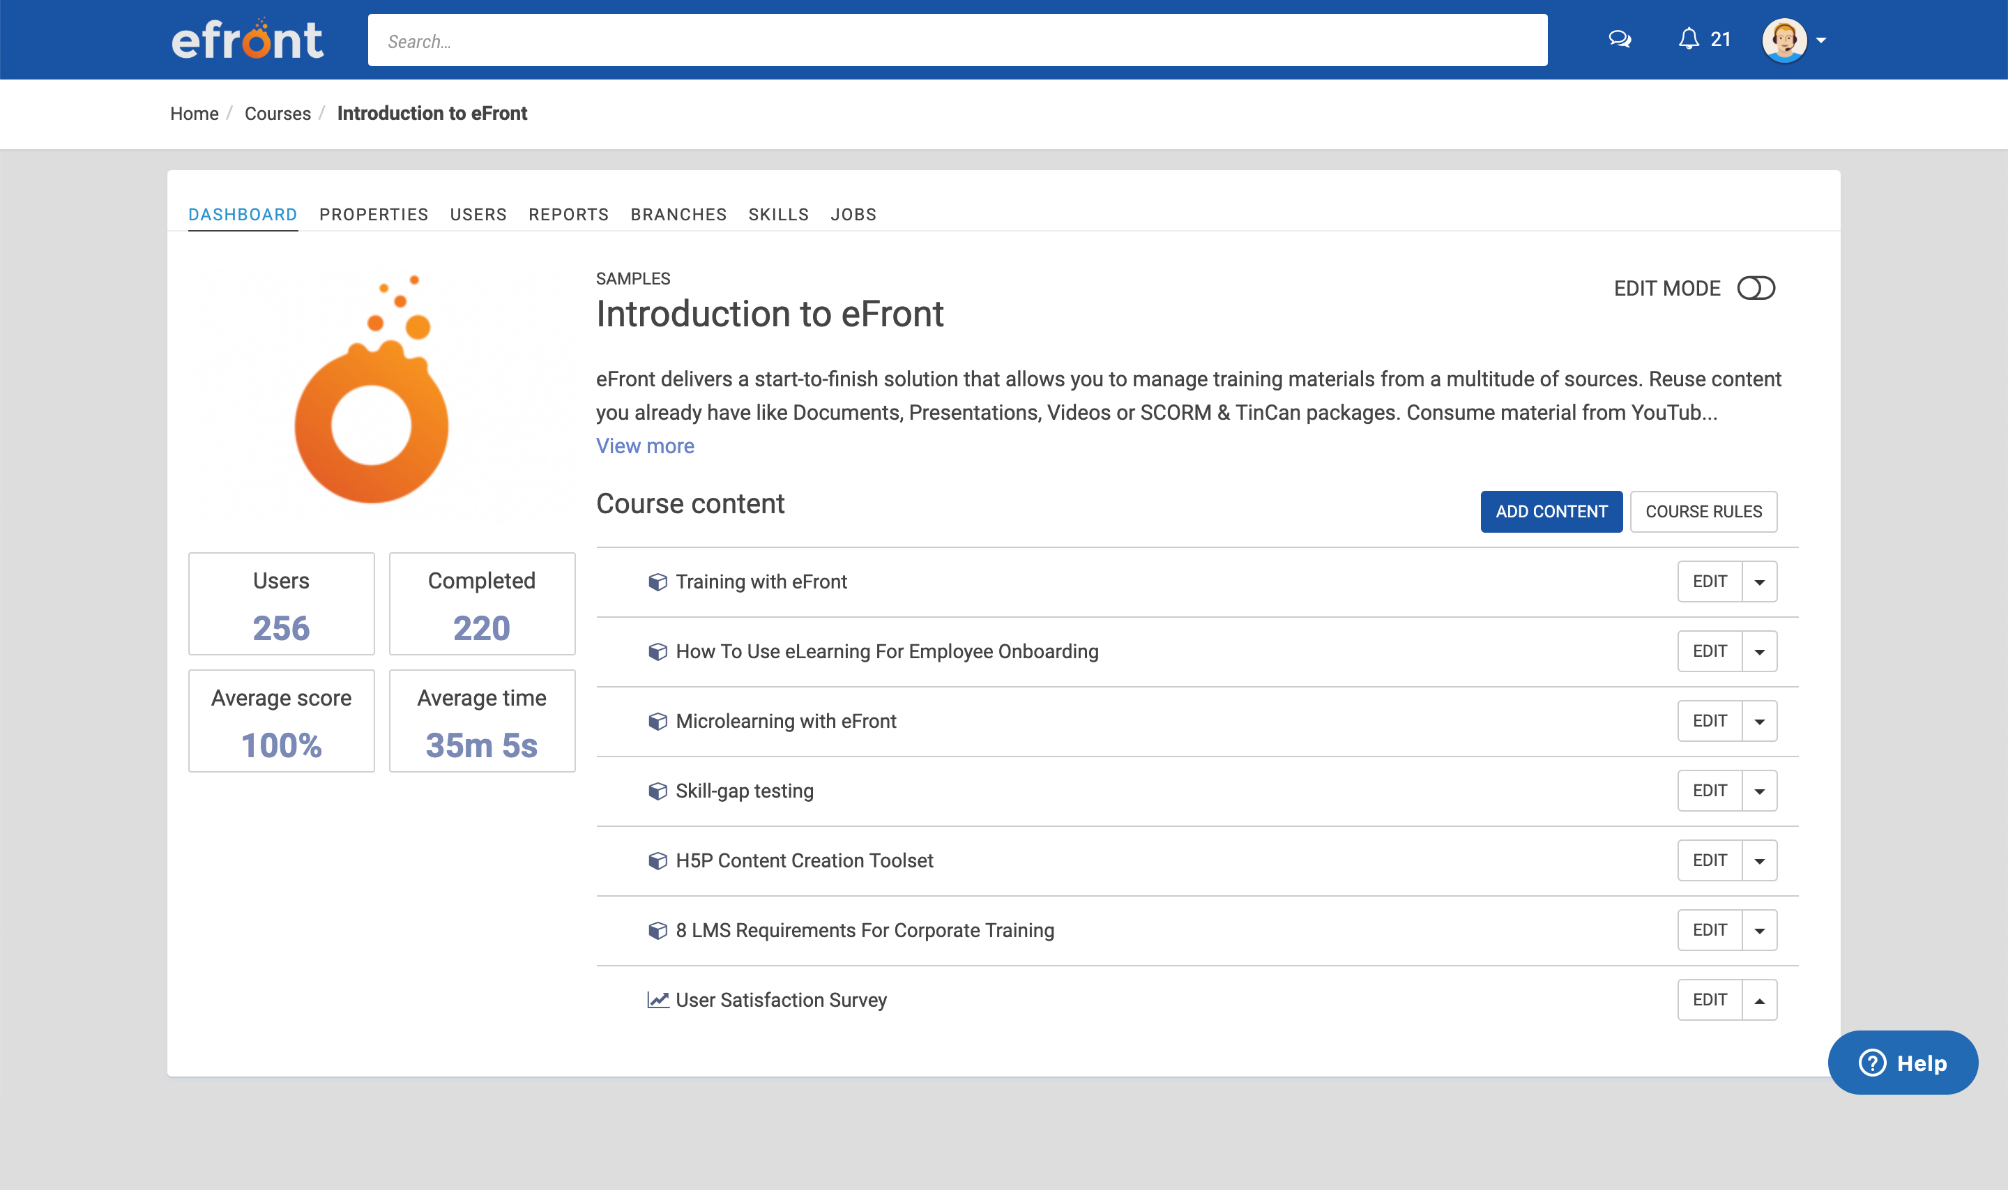 eFront learner view includes summary of the lessons within the course, as well as interactive information on users, completion and average score.